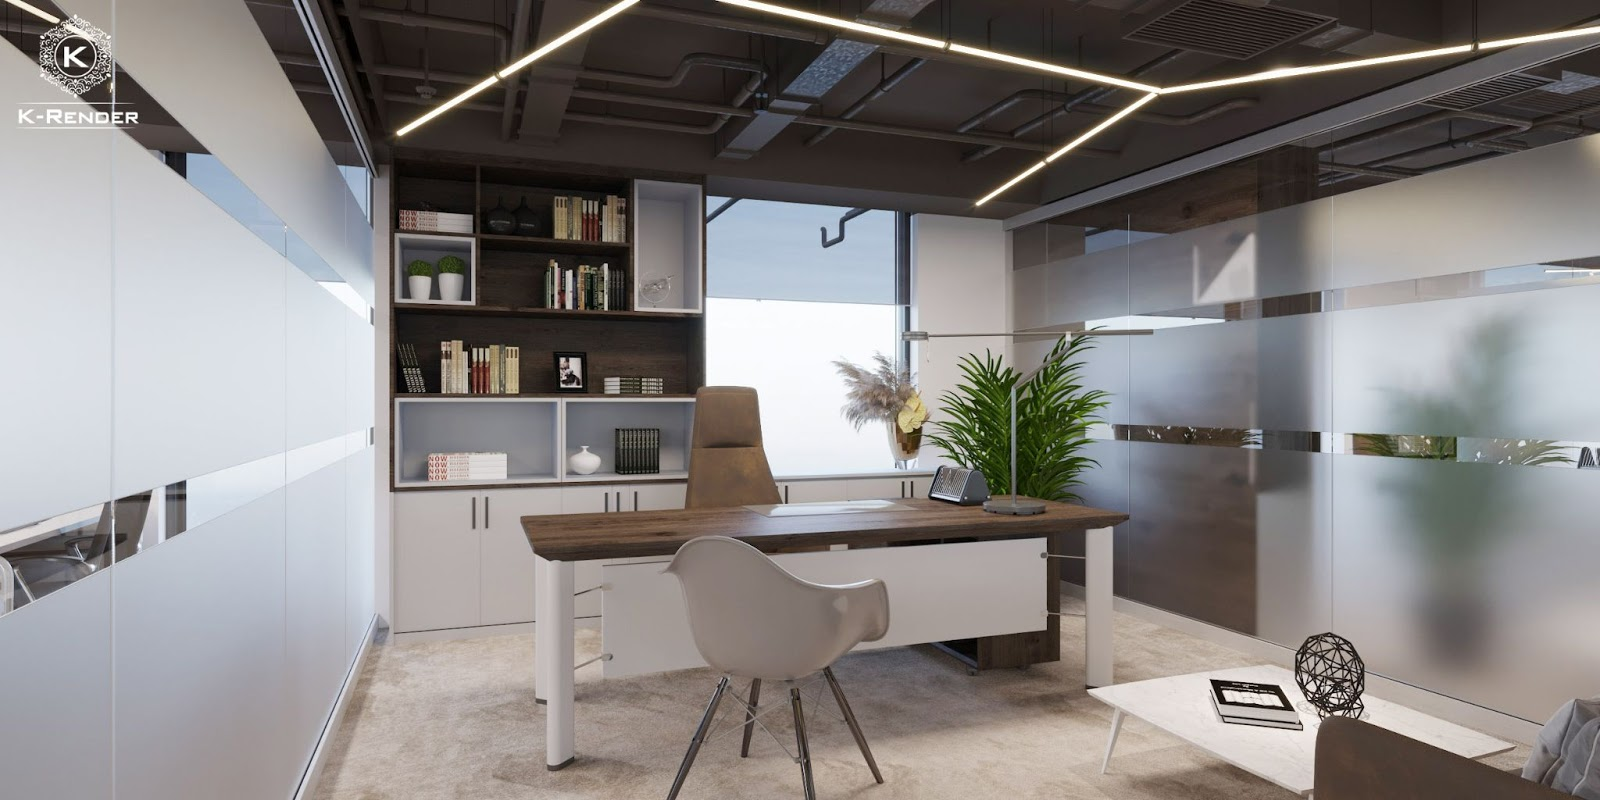 k-render-studio-incredible-services-you-must-know-3